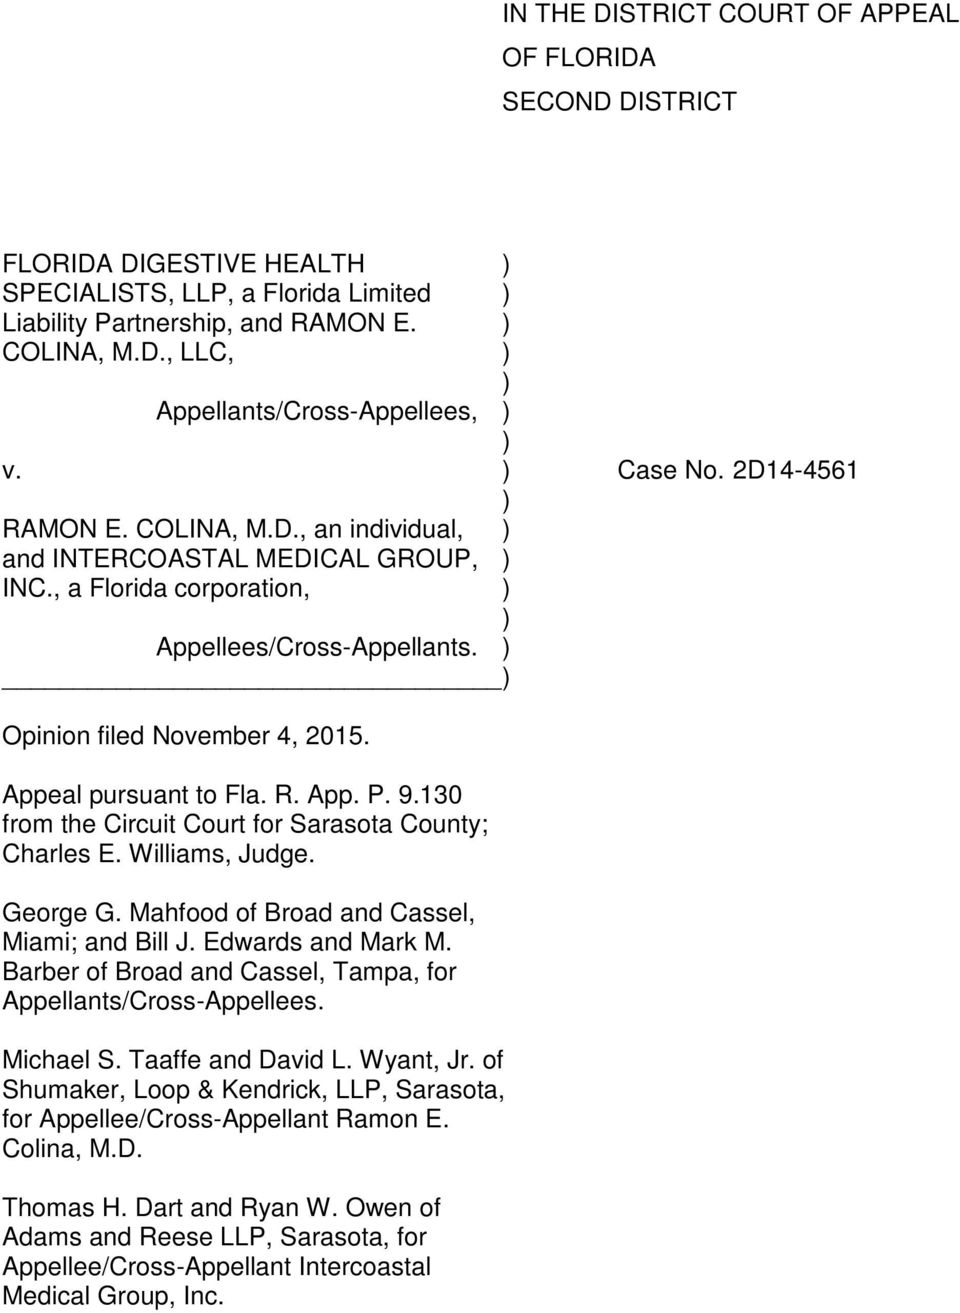 Appeal pursuant to Fla. R. App. P. 9.130 from the Circuit Court for Sarasota County; Charles E. Williams, Judge. George G. Mahfood of Broad and Cassel, Miami; and Bill J. Edwards and Mark M.